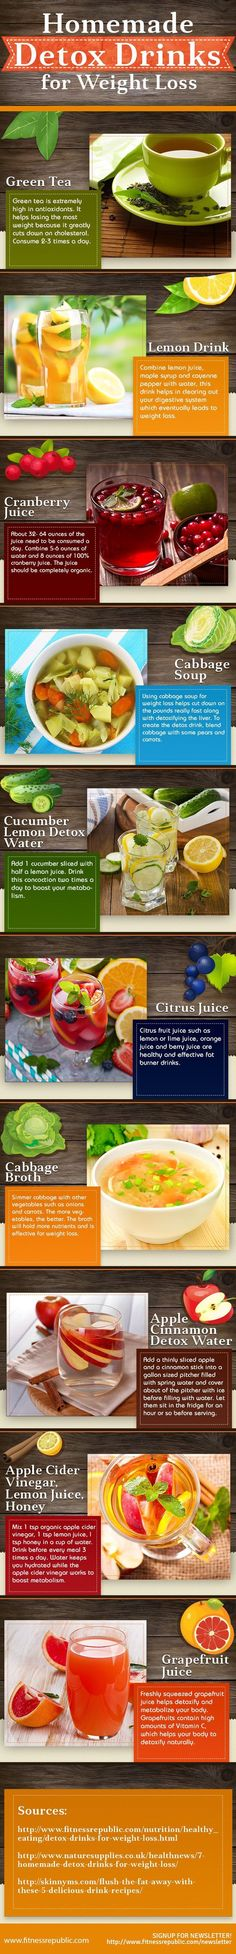 cool Homemade Detox Drinks for Weight Loss